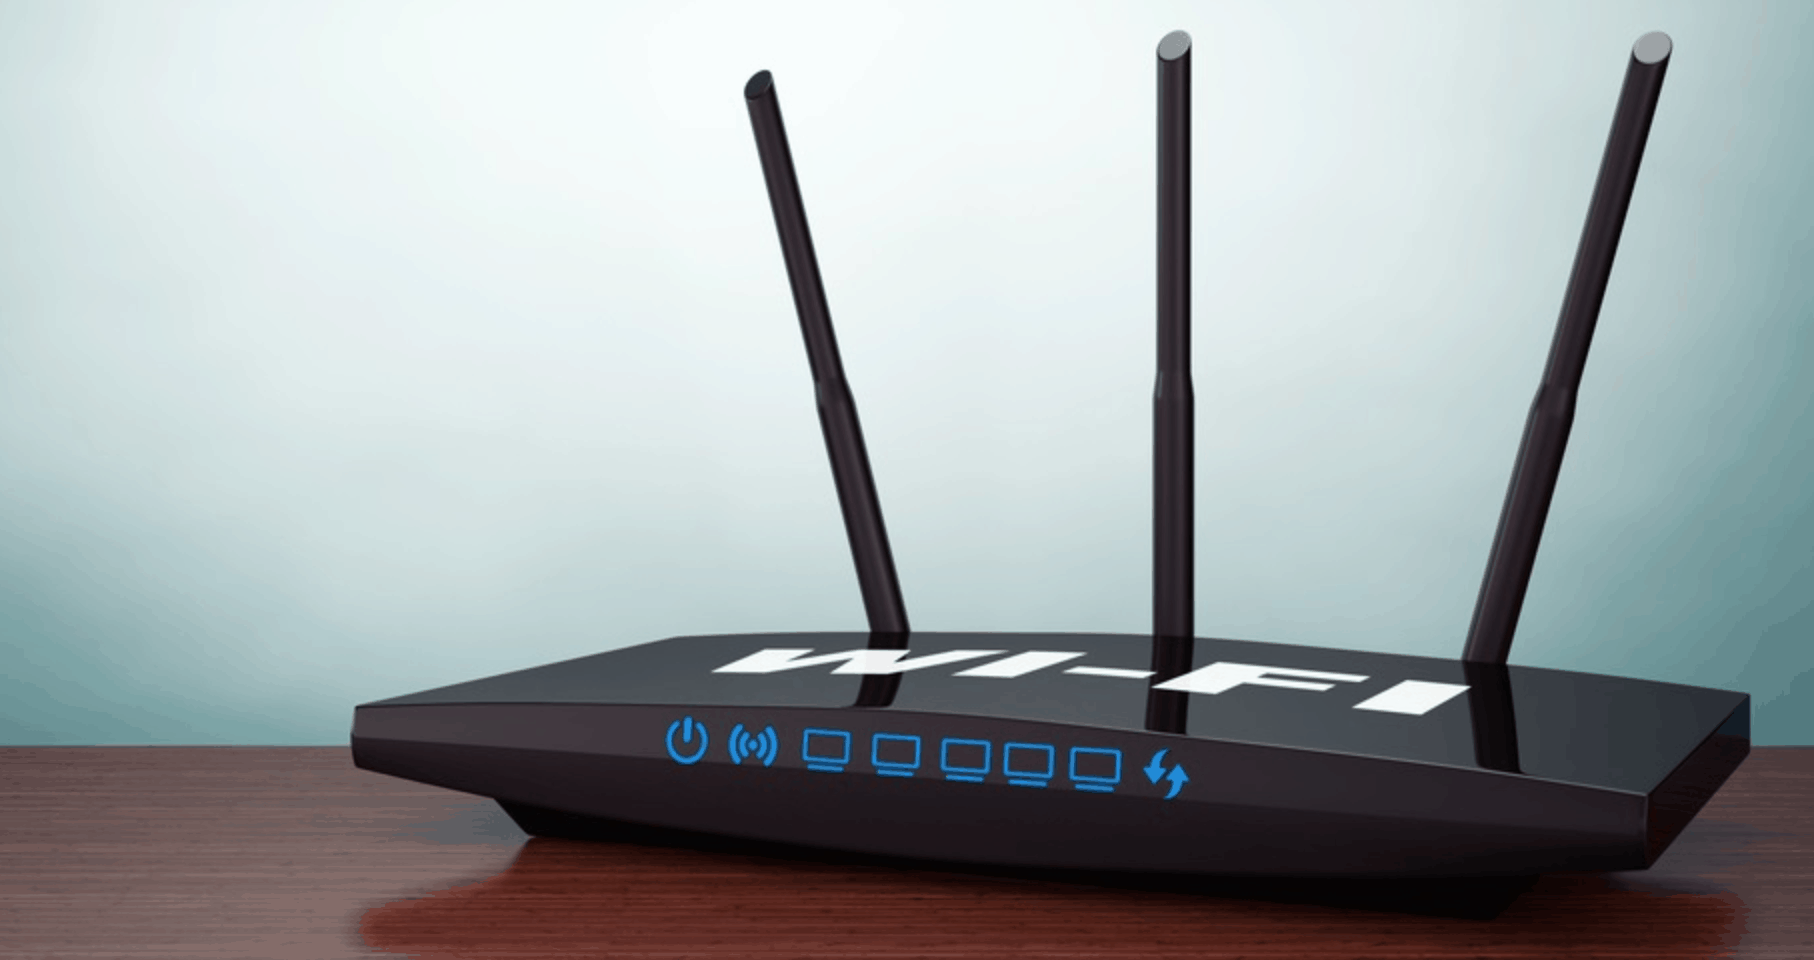 Choosing A Modem & Router To Use With Apple Devices